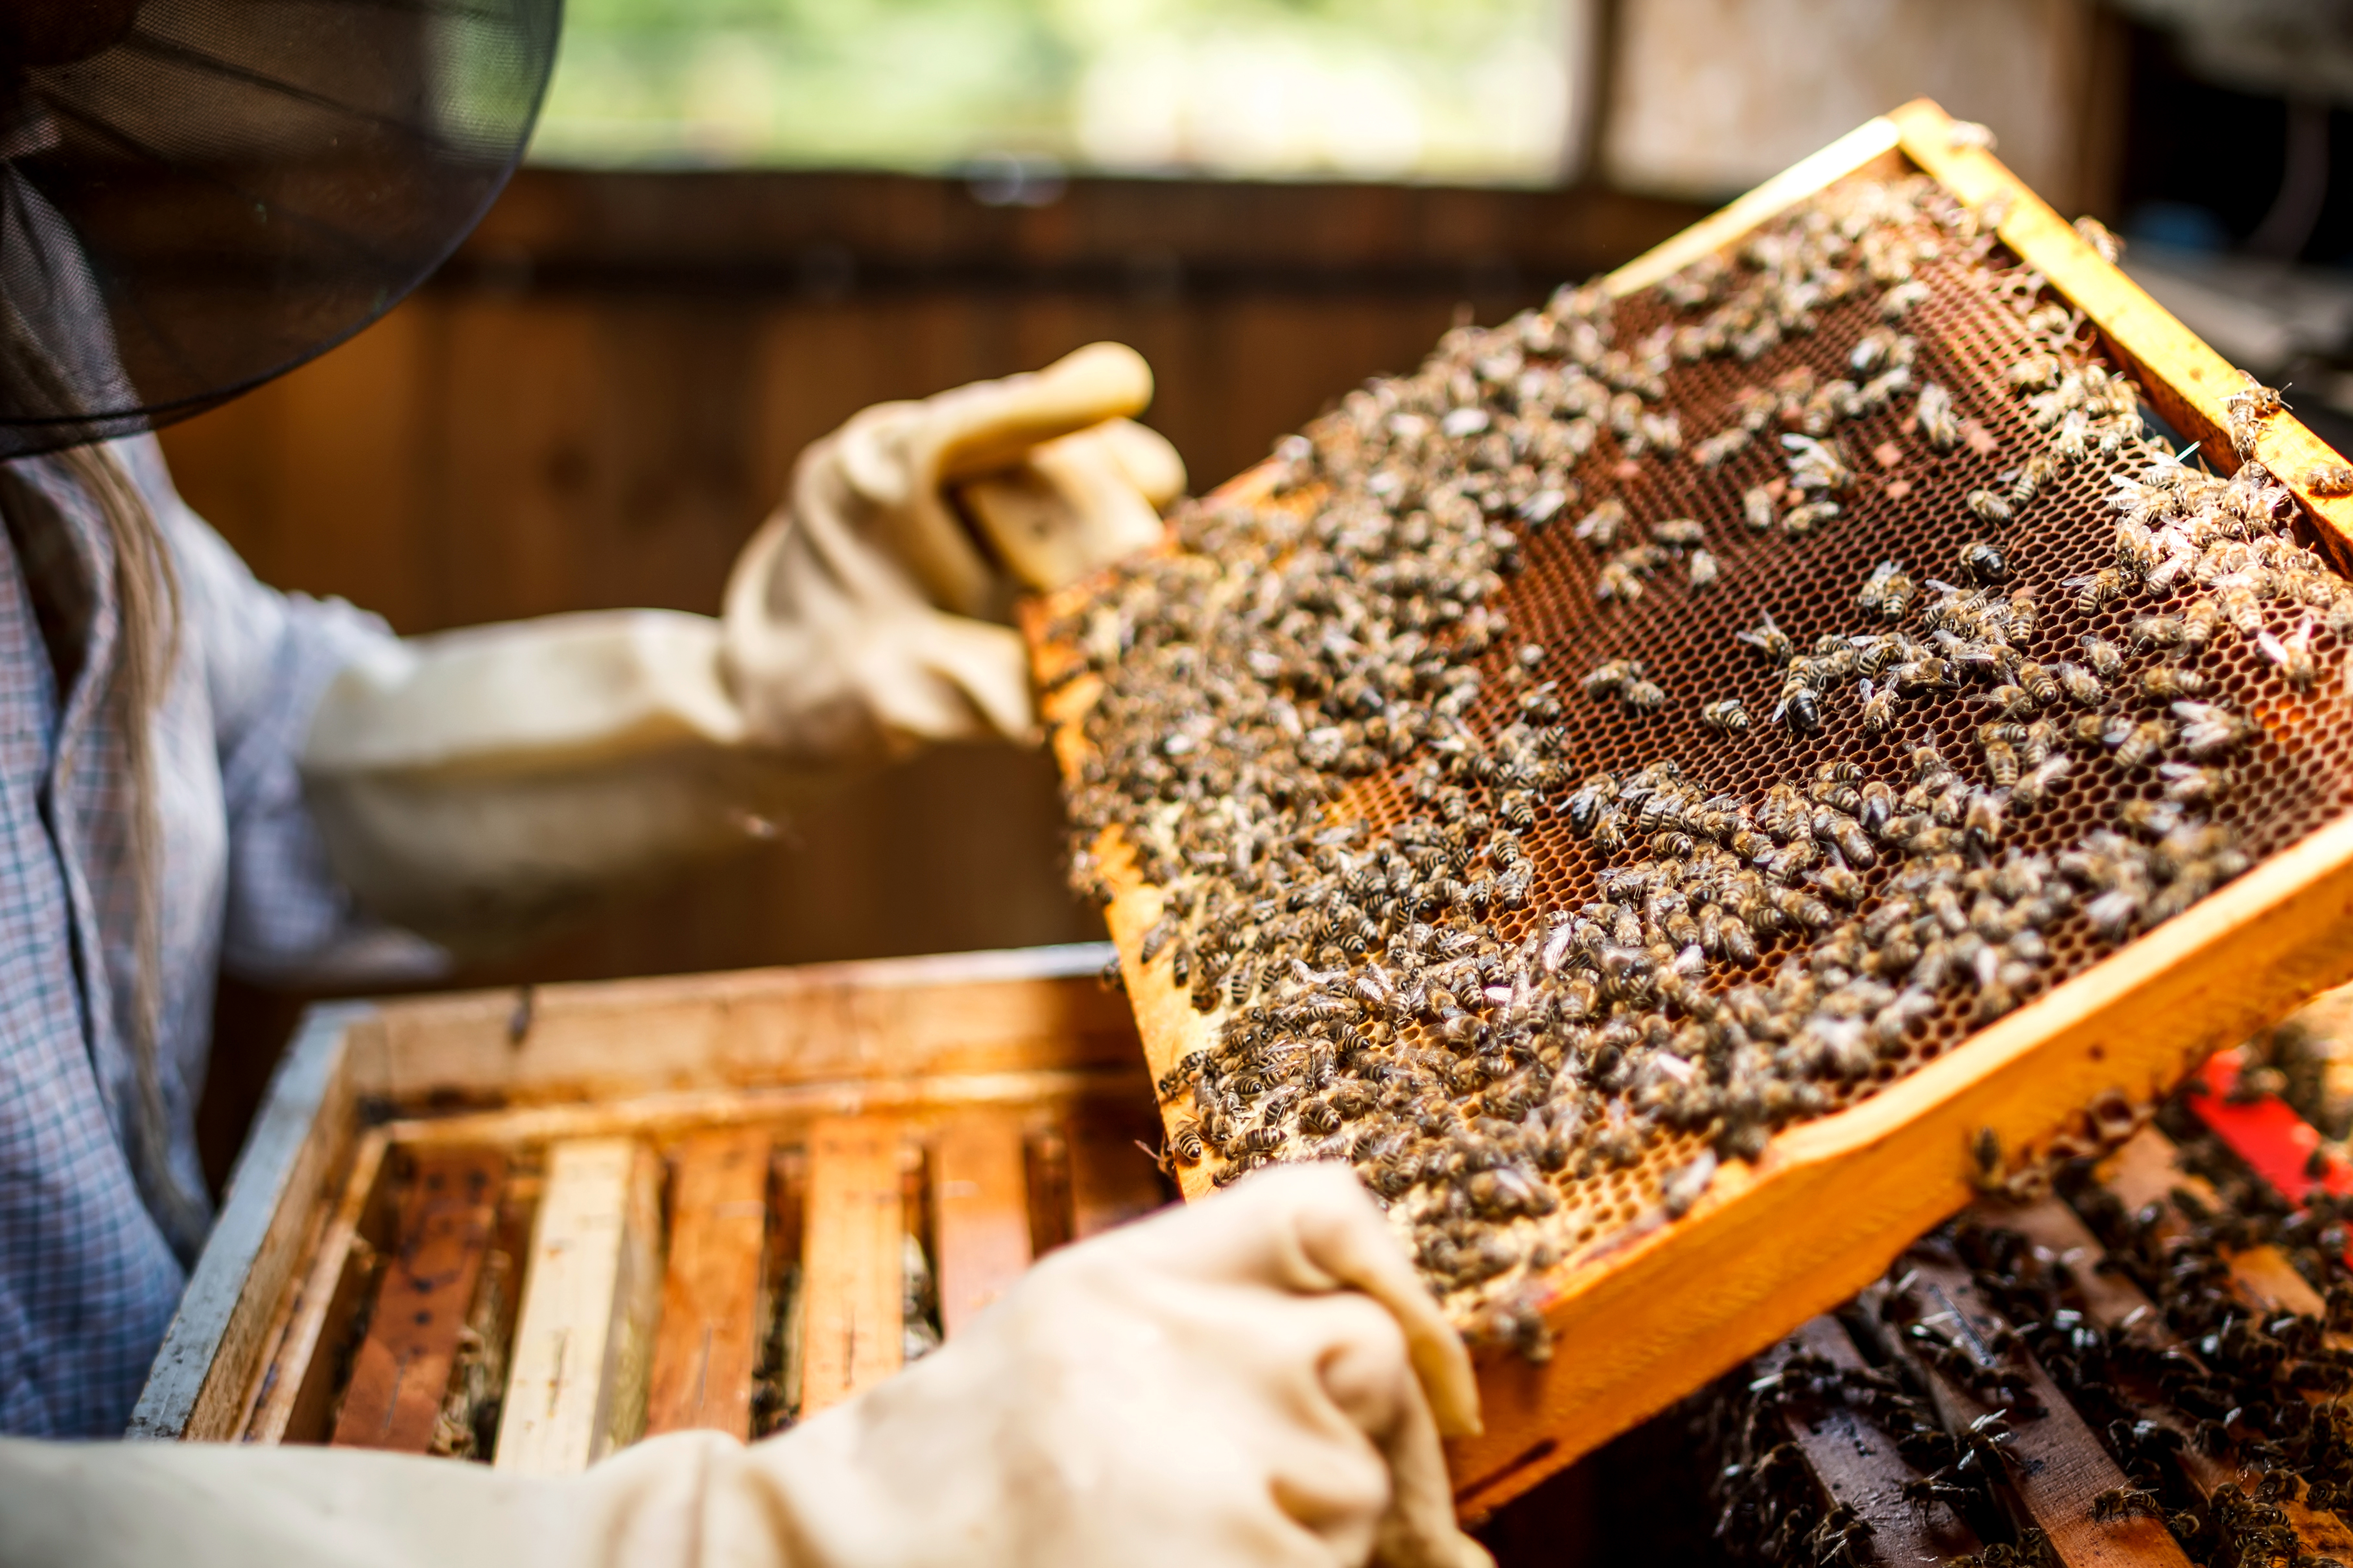 Beekeeper And Honey Bee comb OKC